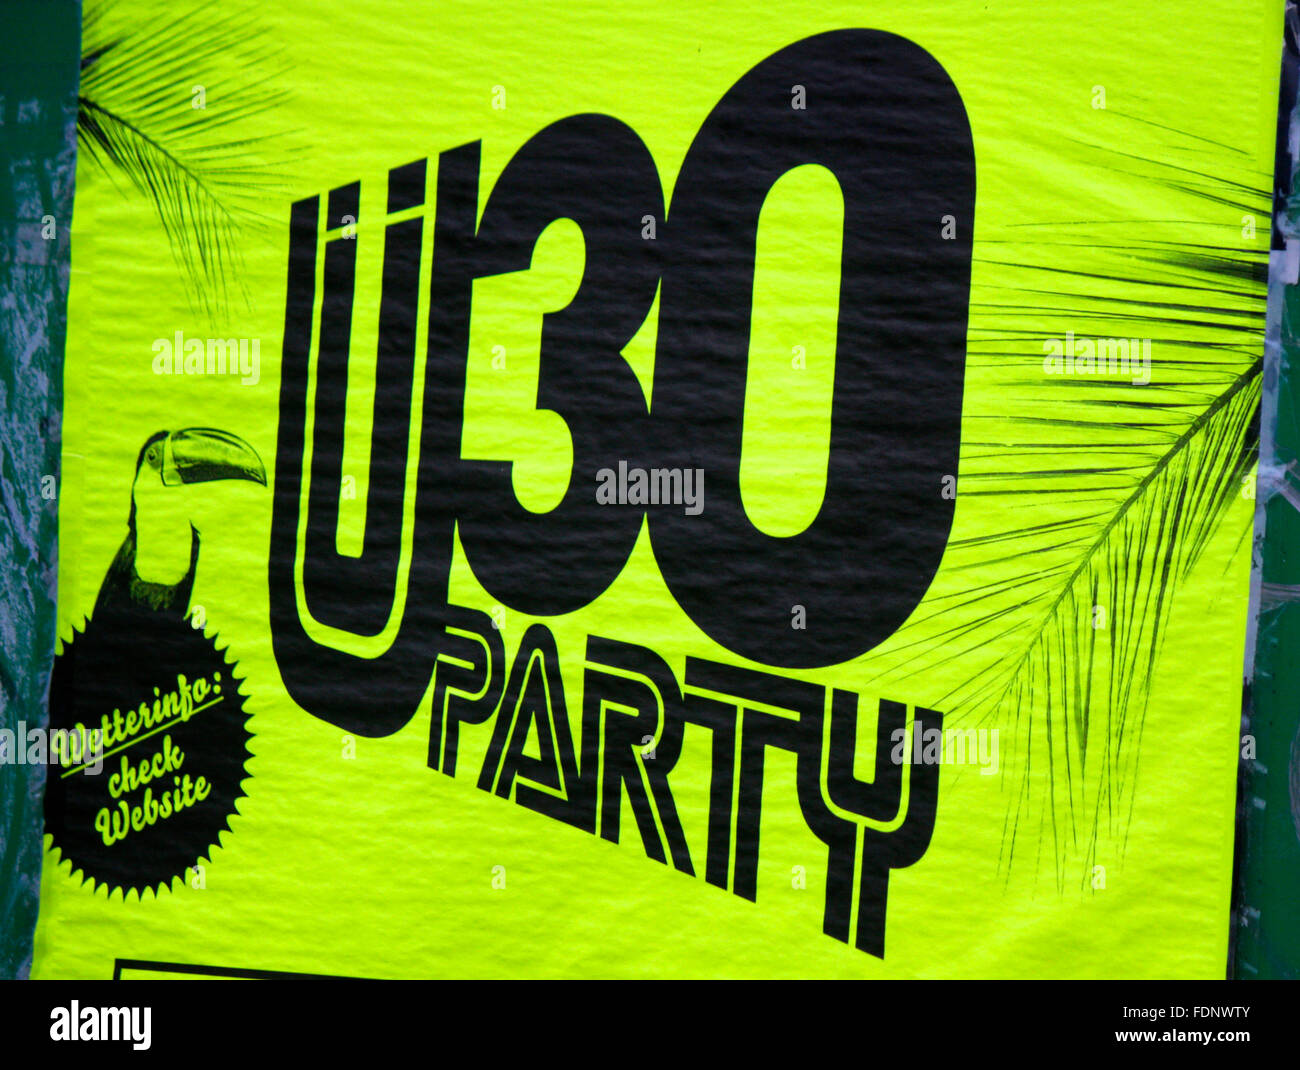 Ue 30 Markenname: 'party', Berlin. Photo Stock